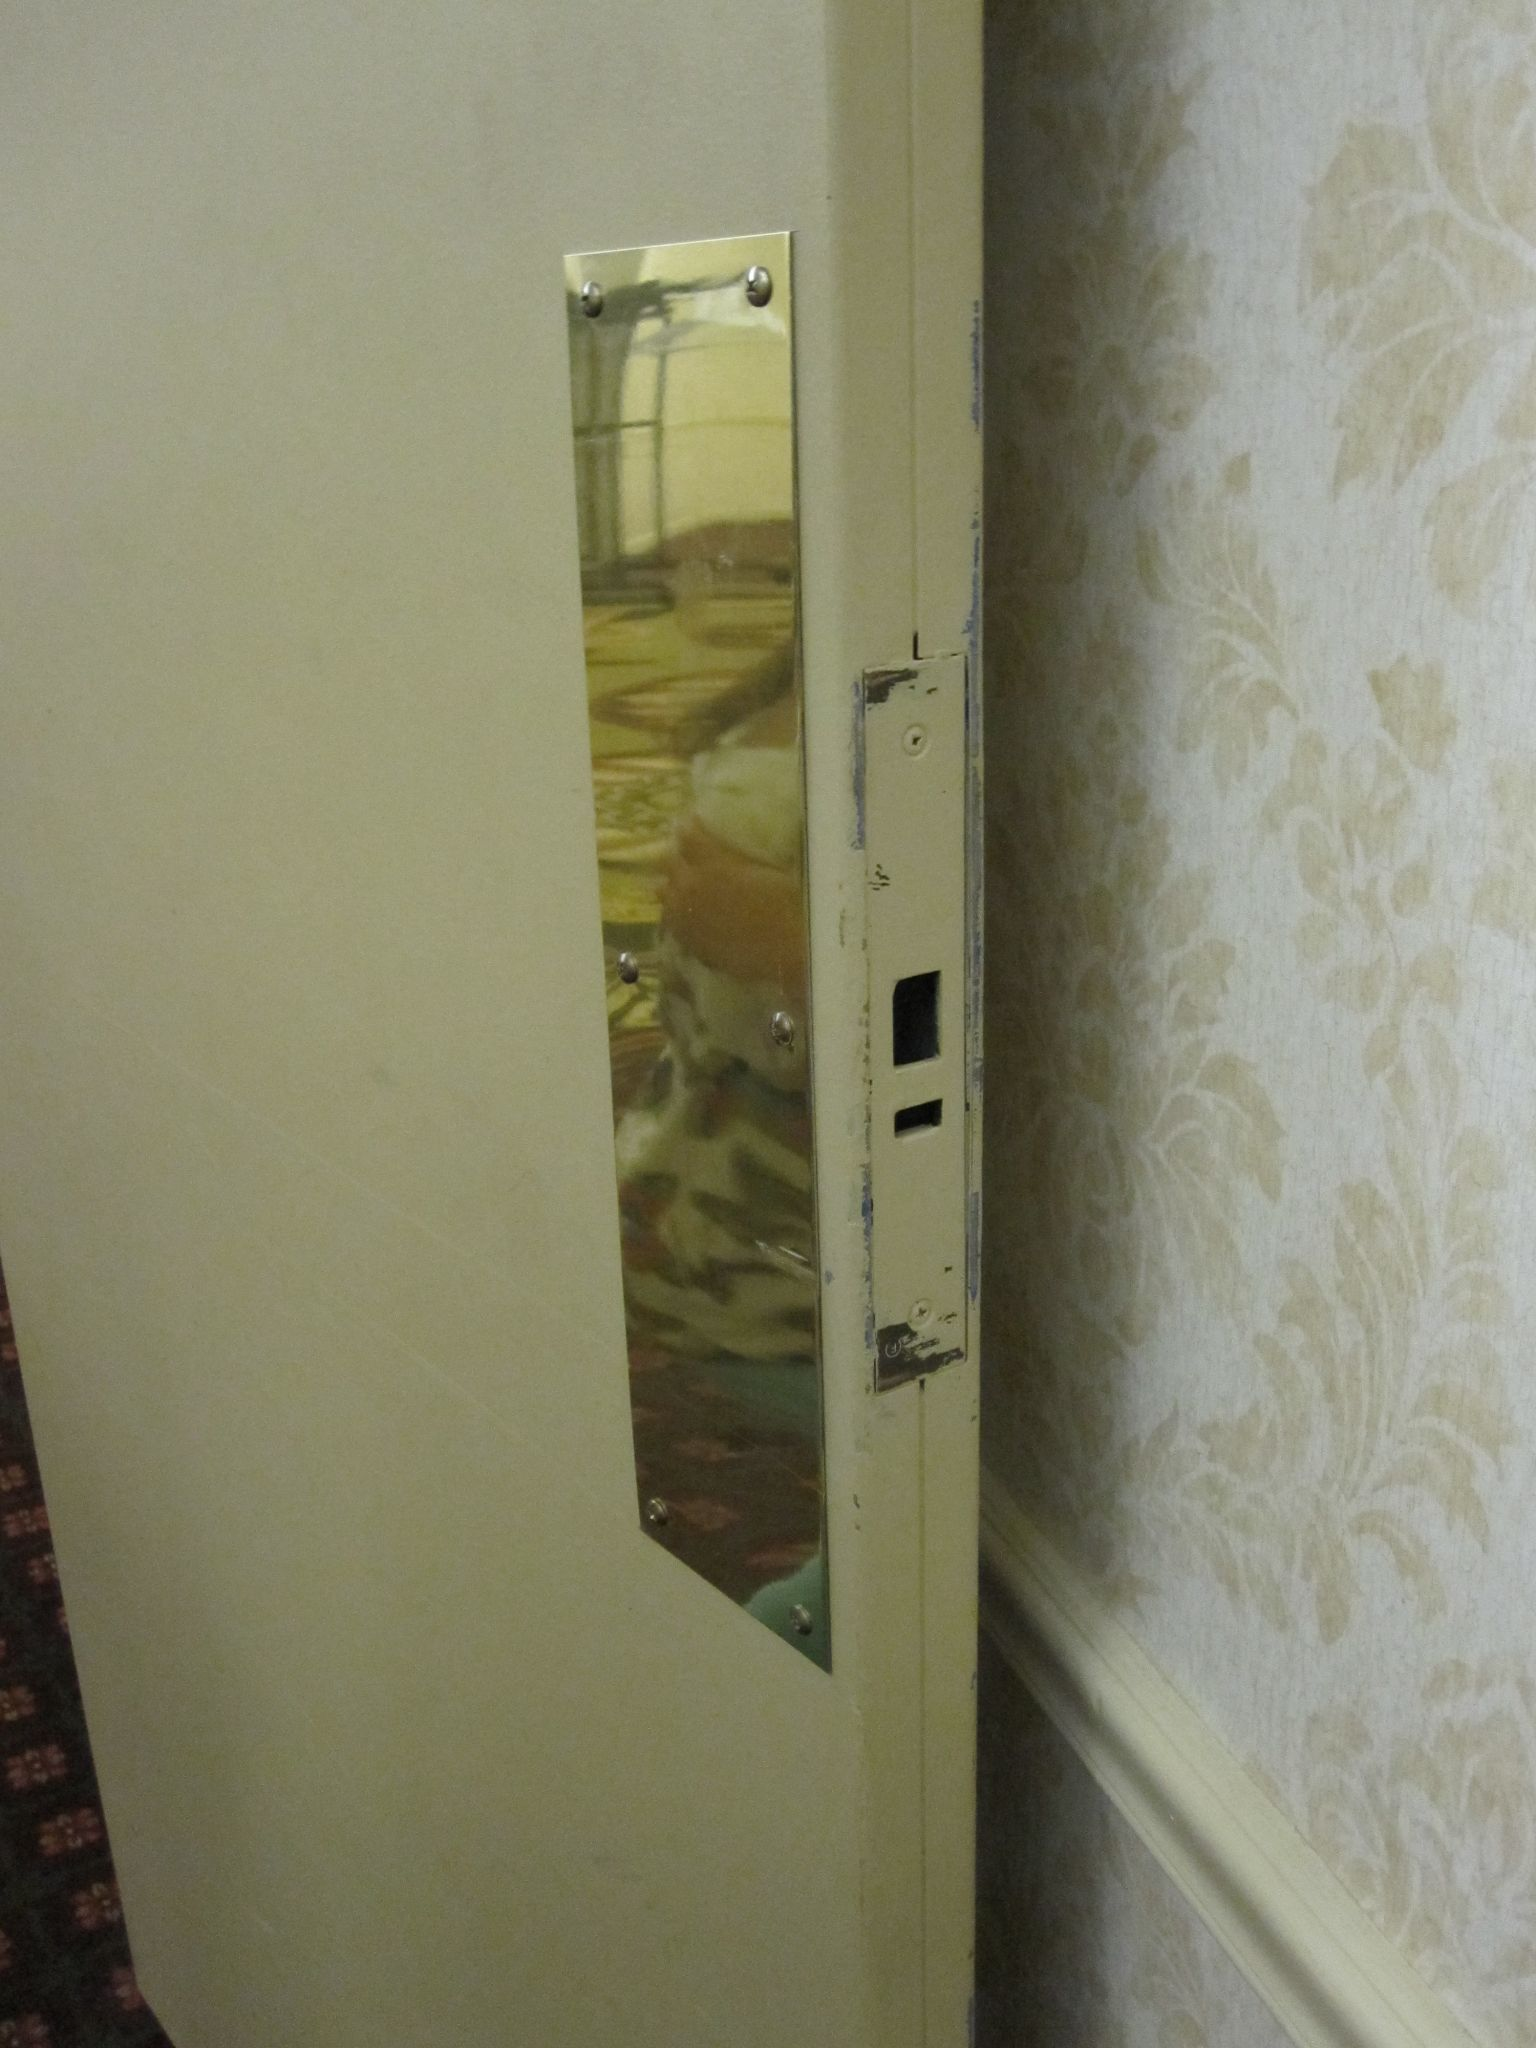 Perfect Fire Doors Are Typically Required To Latch, But Defective Latching Hardware  Is Sometimes Removed Instead Of Replaced, As Illustrated In This Photo Of  An ...